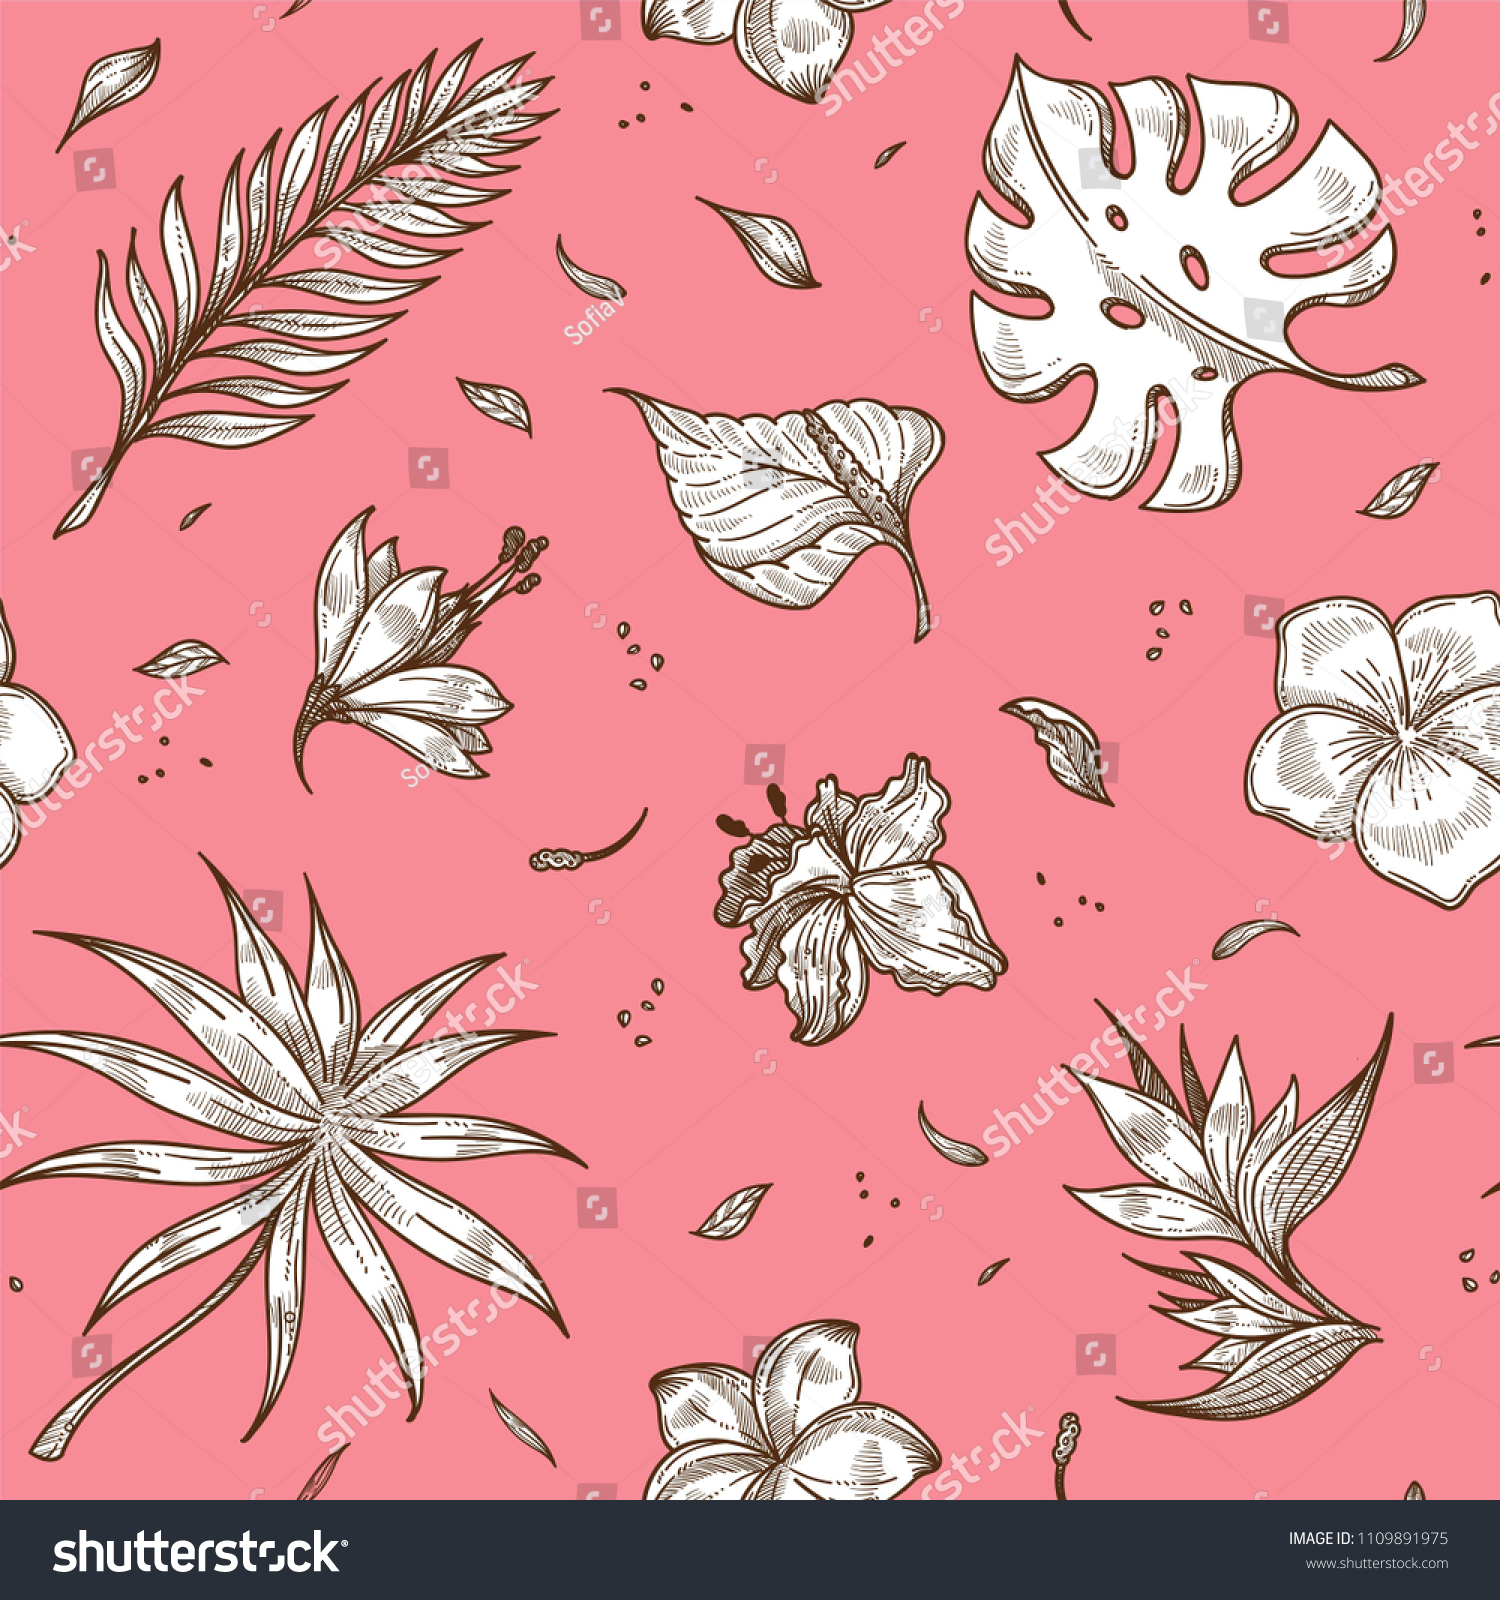 Tropical Plants Sketches On Pink Backdrop In Seamless Pattern